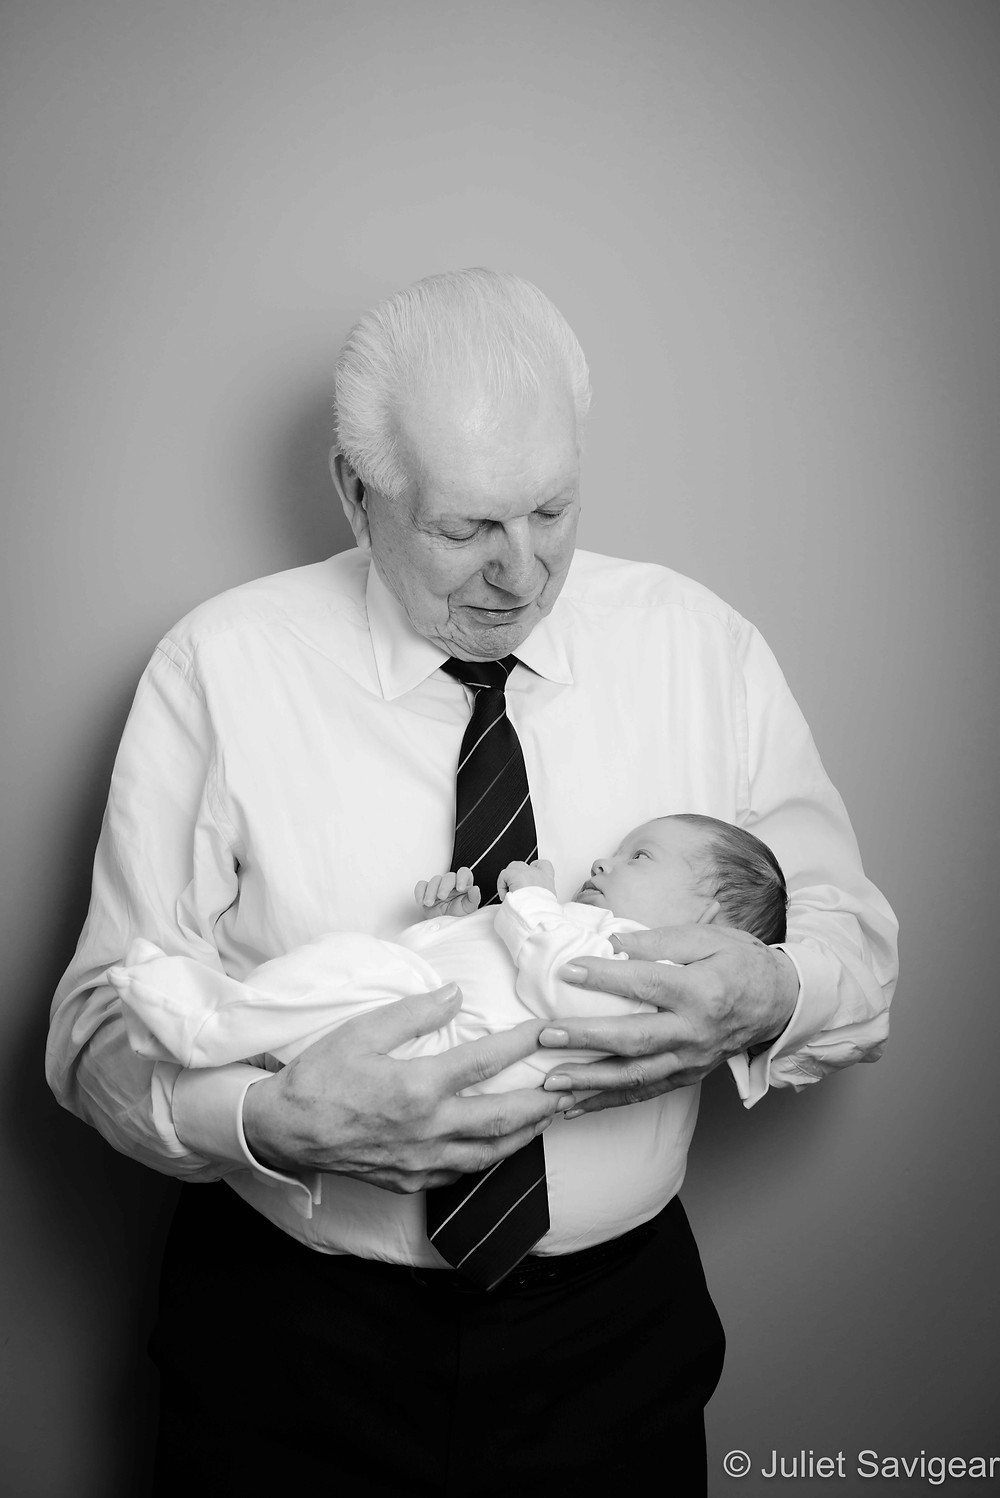 Baby In Grandpa's Arms